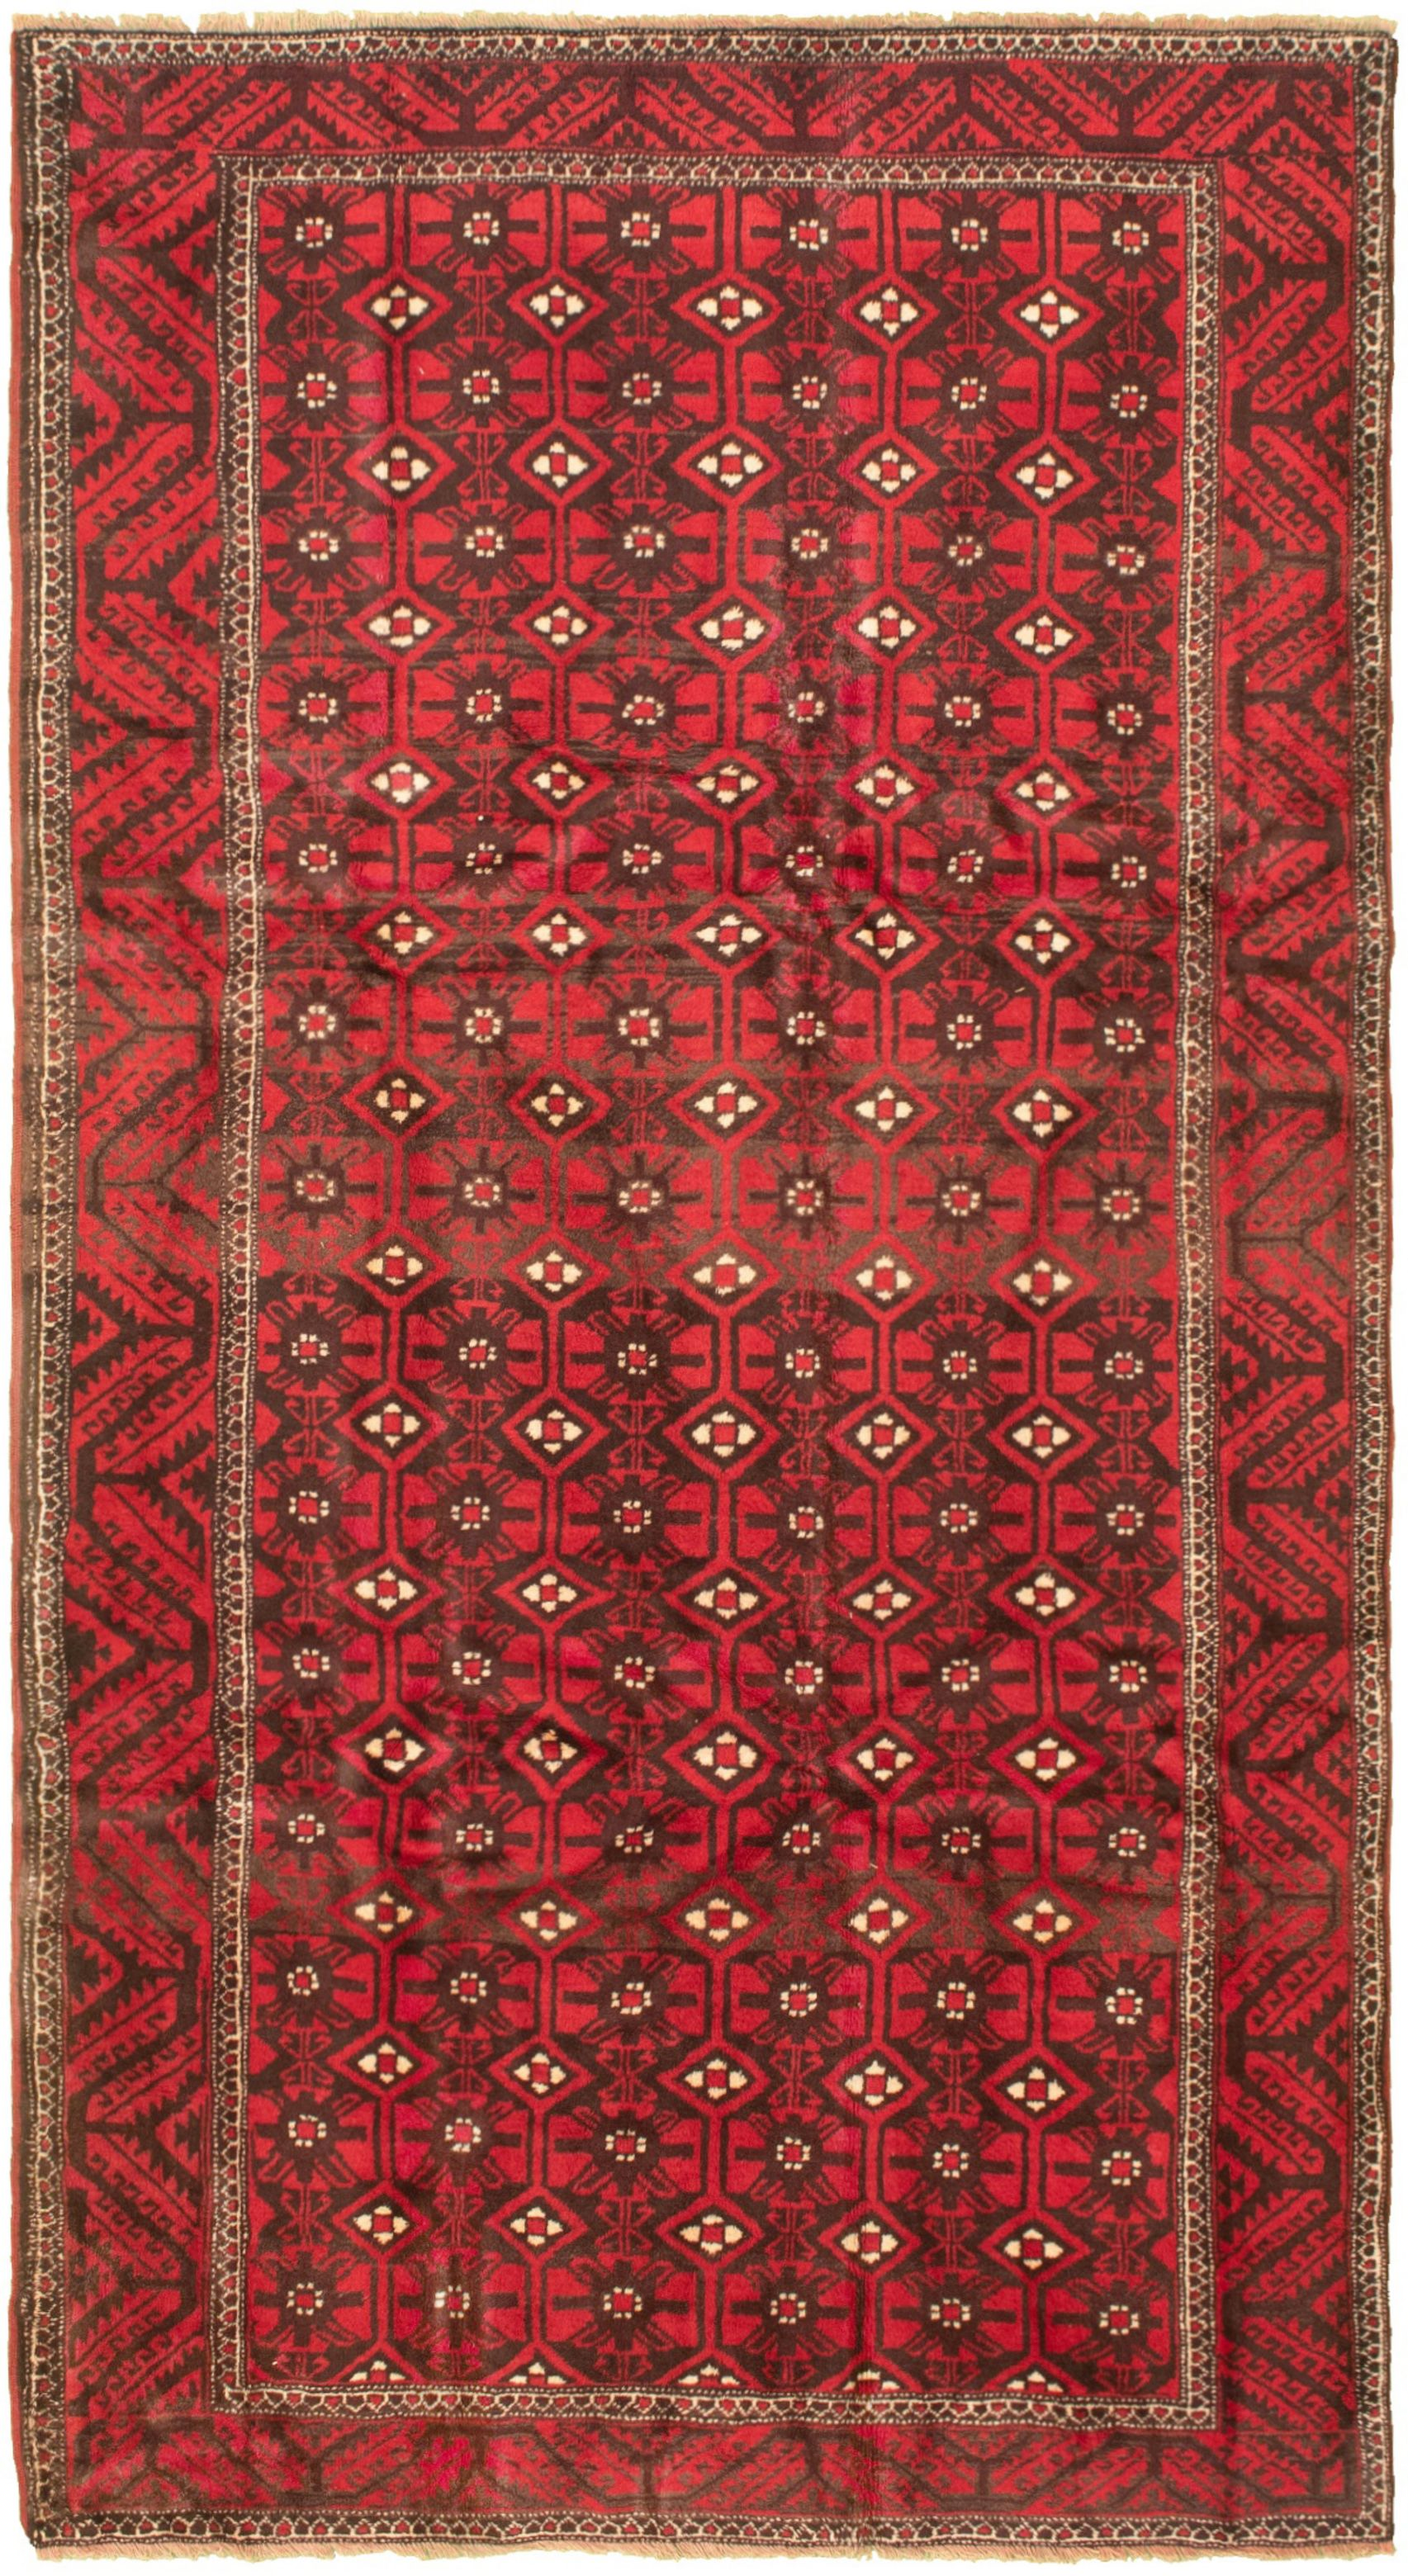 "Hand-knotted Authentic Turkish Red Wool Rug 5'0"" x 9'9""  Size: 5'0"" x 9'9"""